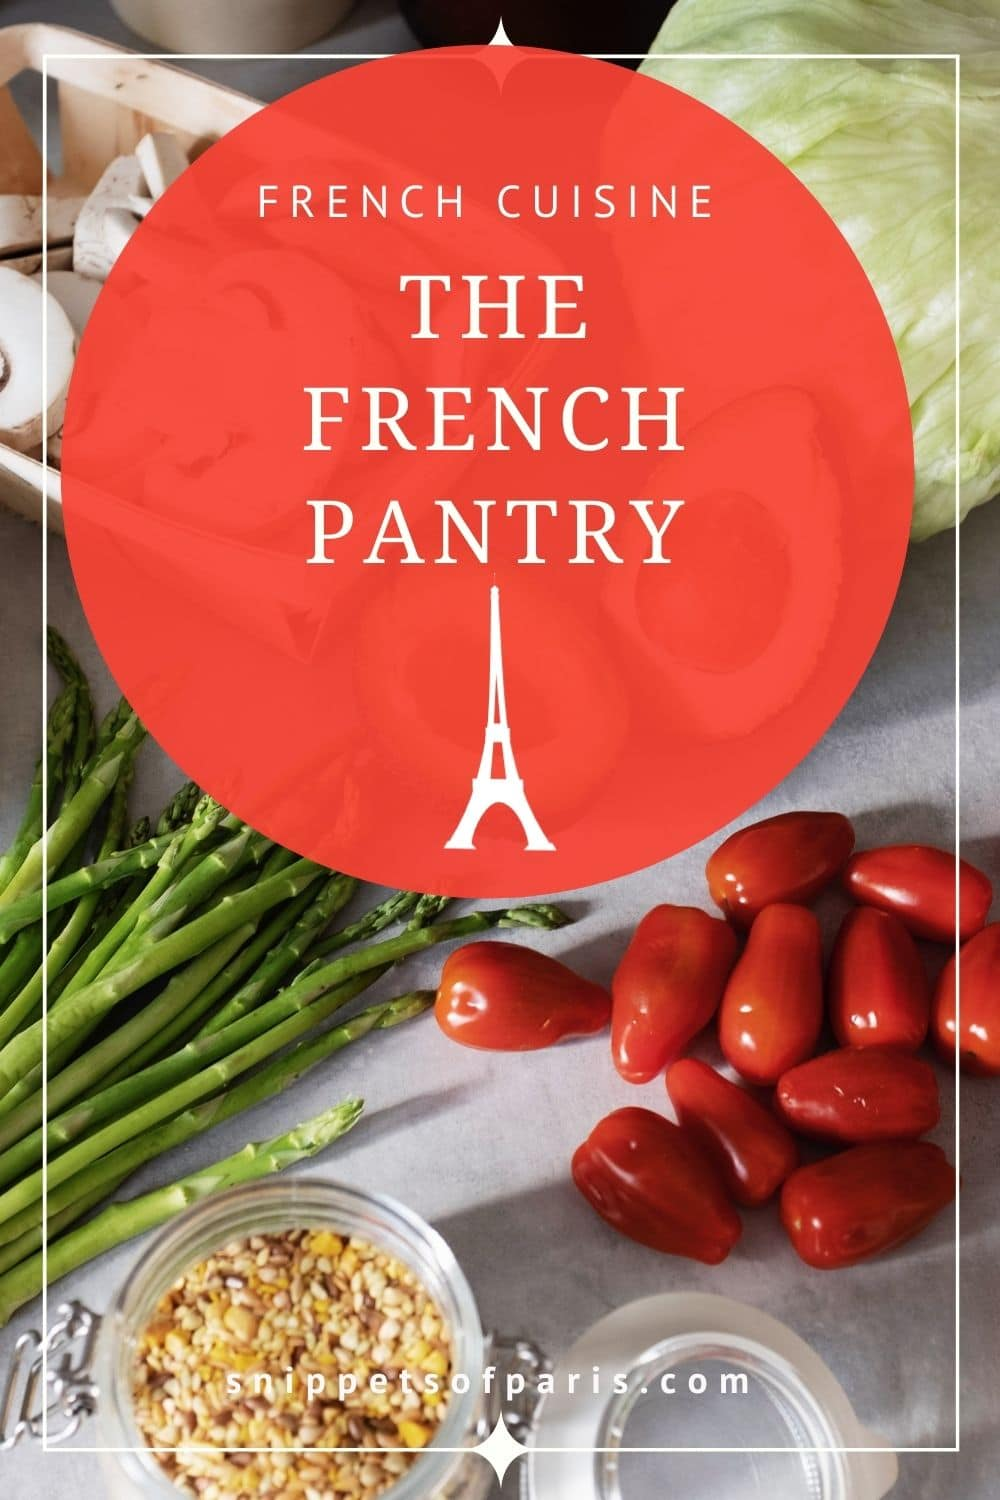 Stocking a French Pantry: 46 Ingredients and Staples you will need